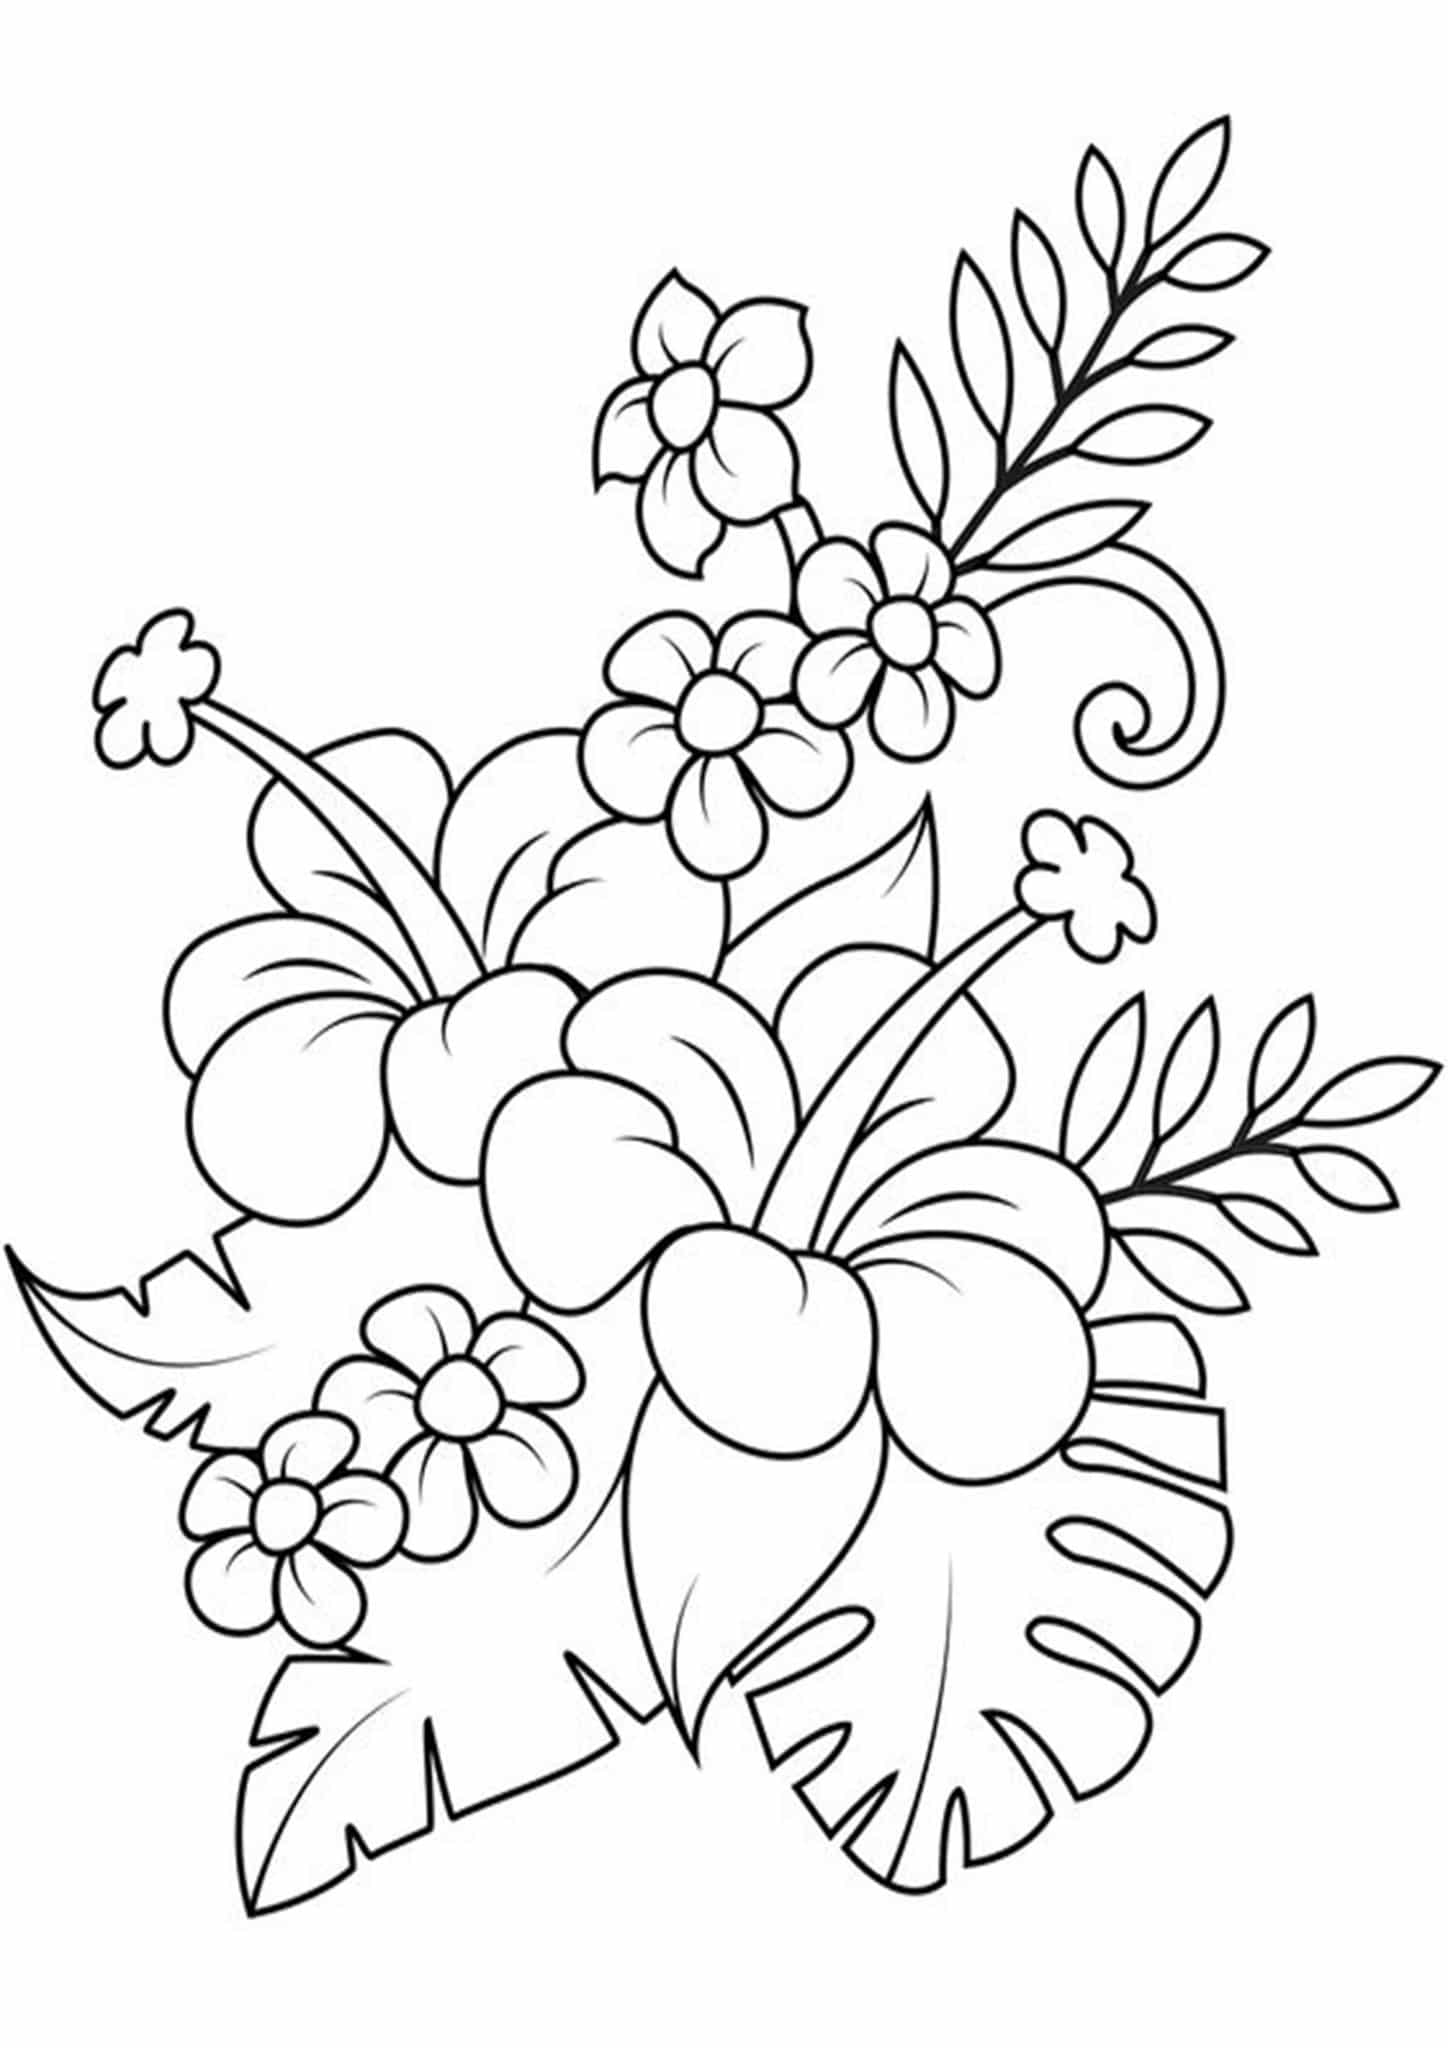 flower printable coloring sheets free printable floral coloring page ausdruckbare coloring printable sheets flower